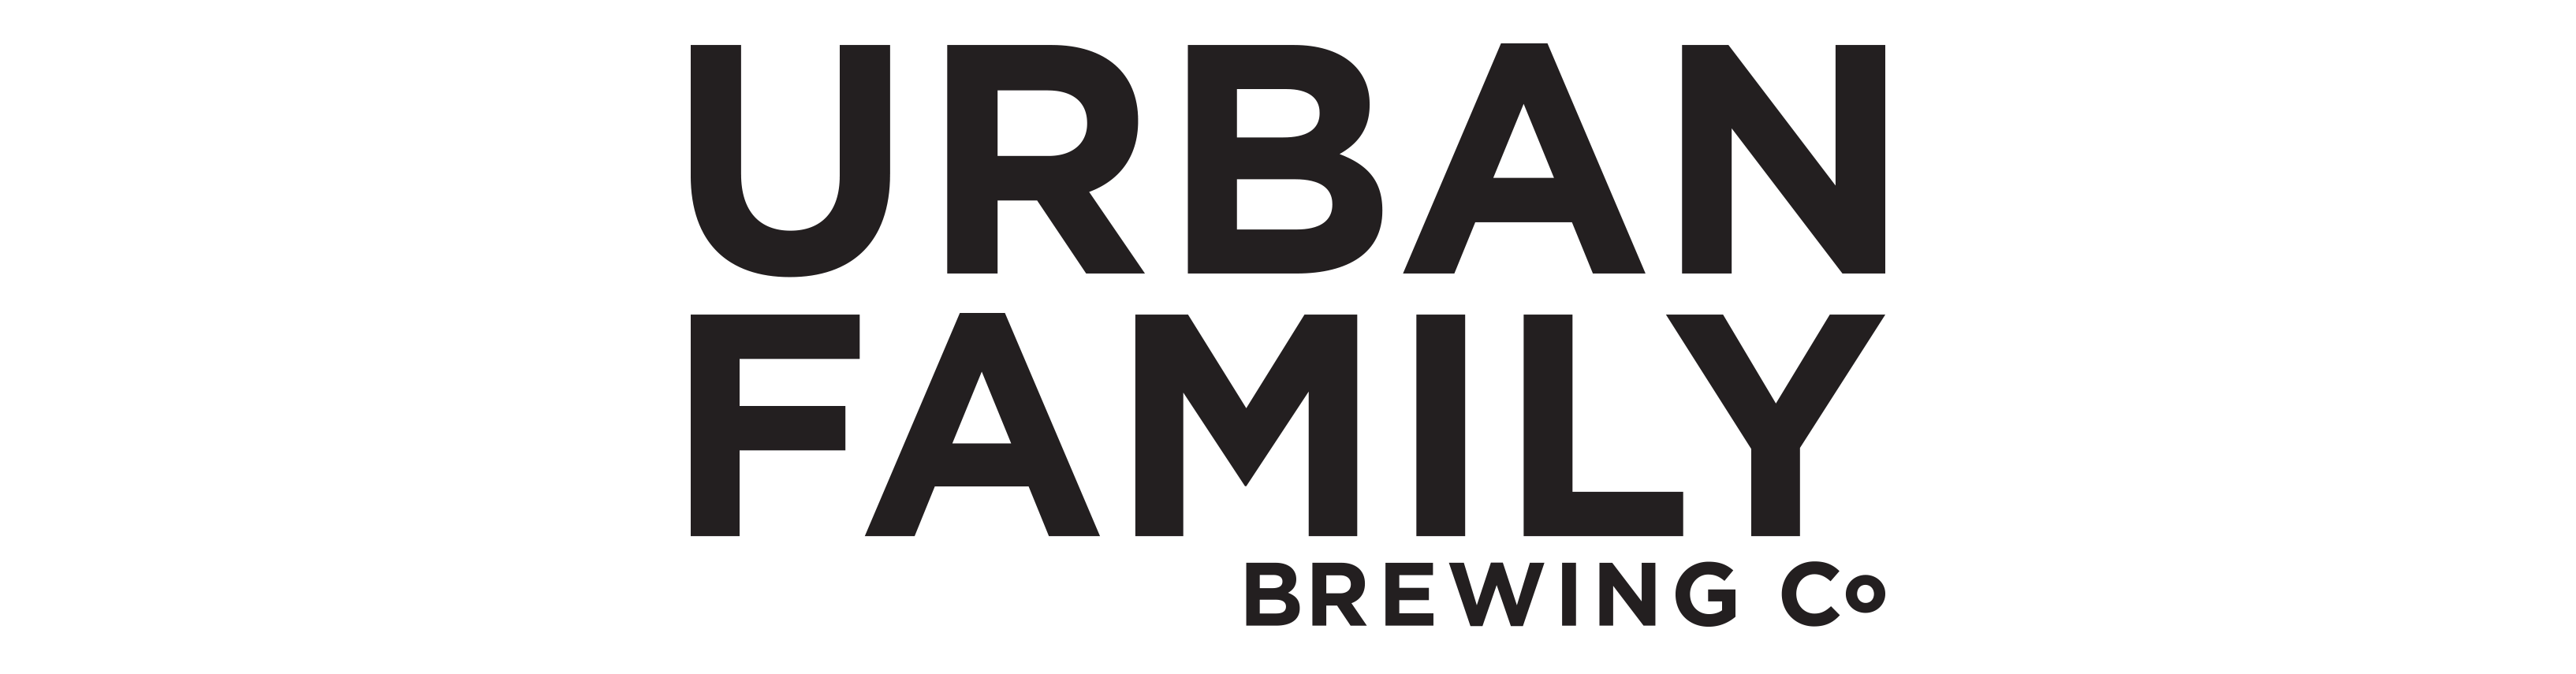 Urban Family Brewing